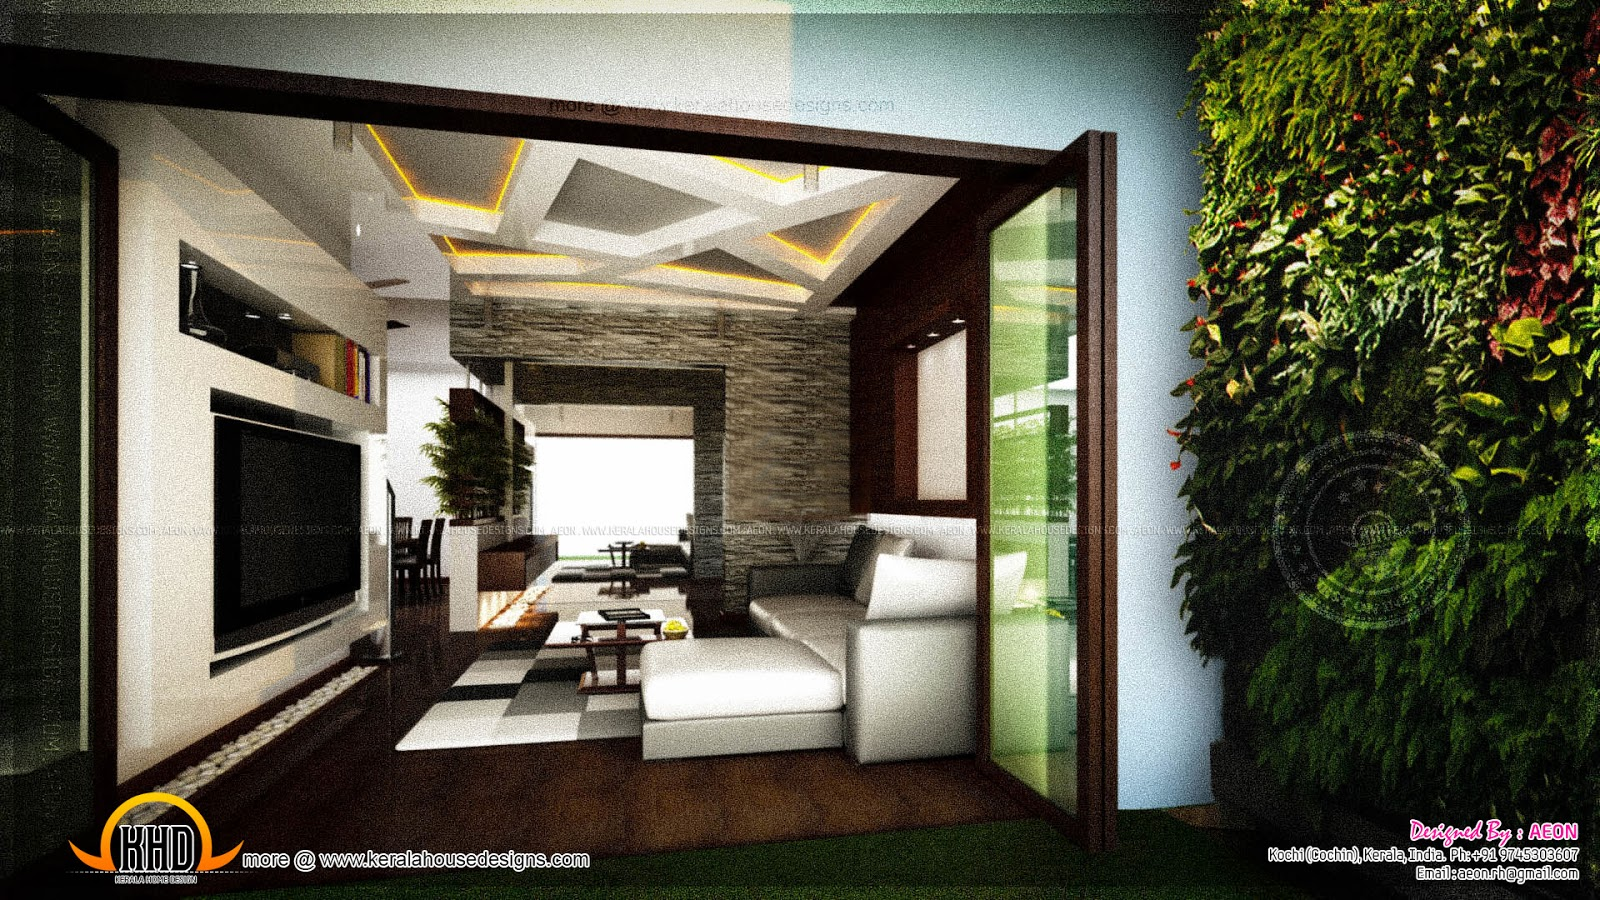 Apartment interior designs by aeon cochin kerala home for Apartment interior designs india